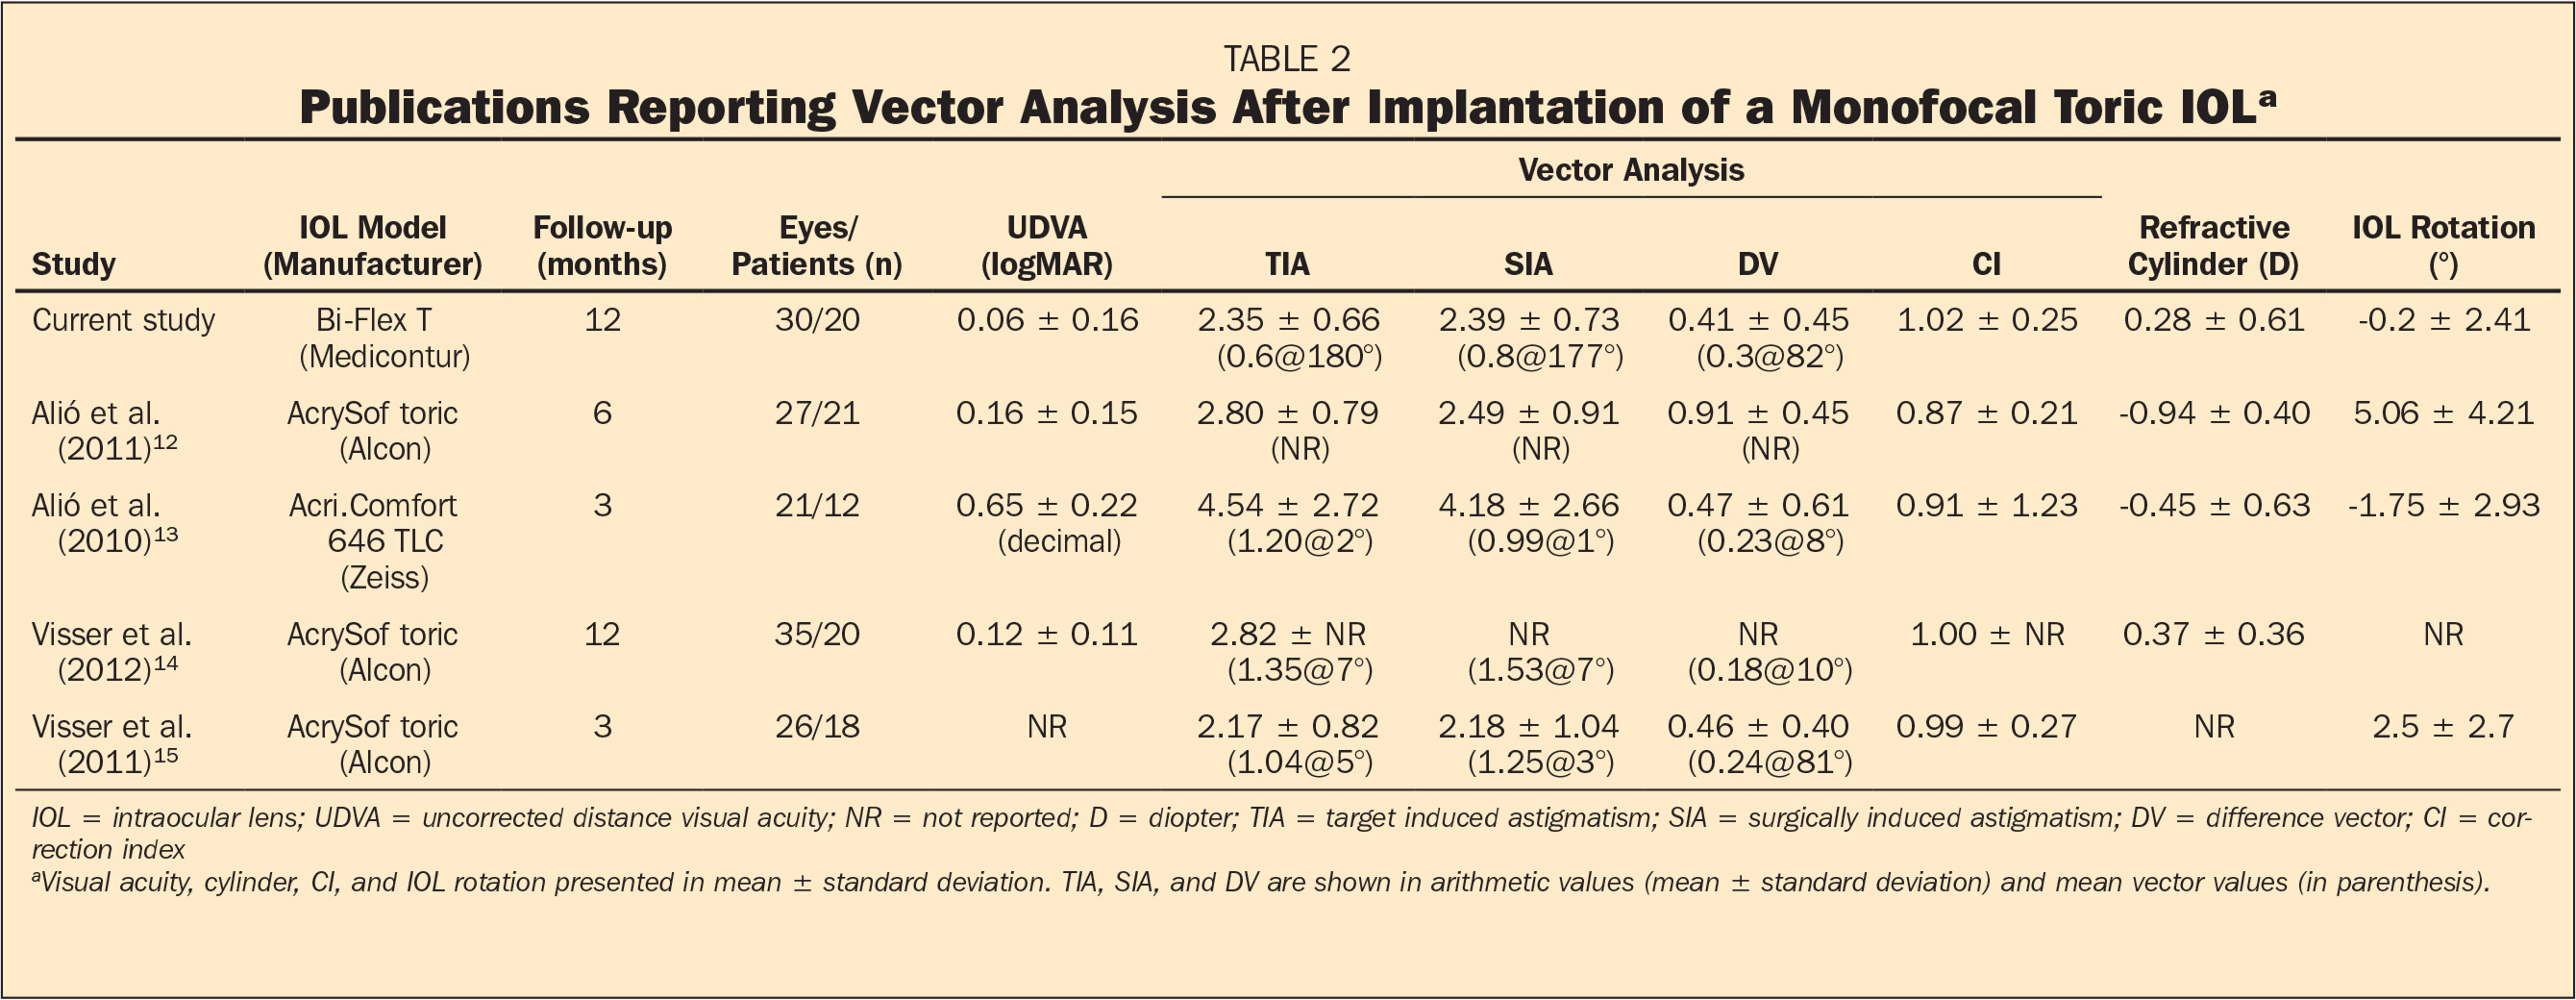 Publications Reporting Vector Analysis After Implantation of a Monofocal Toric IOLa